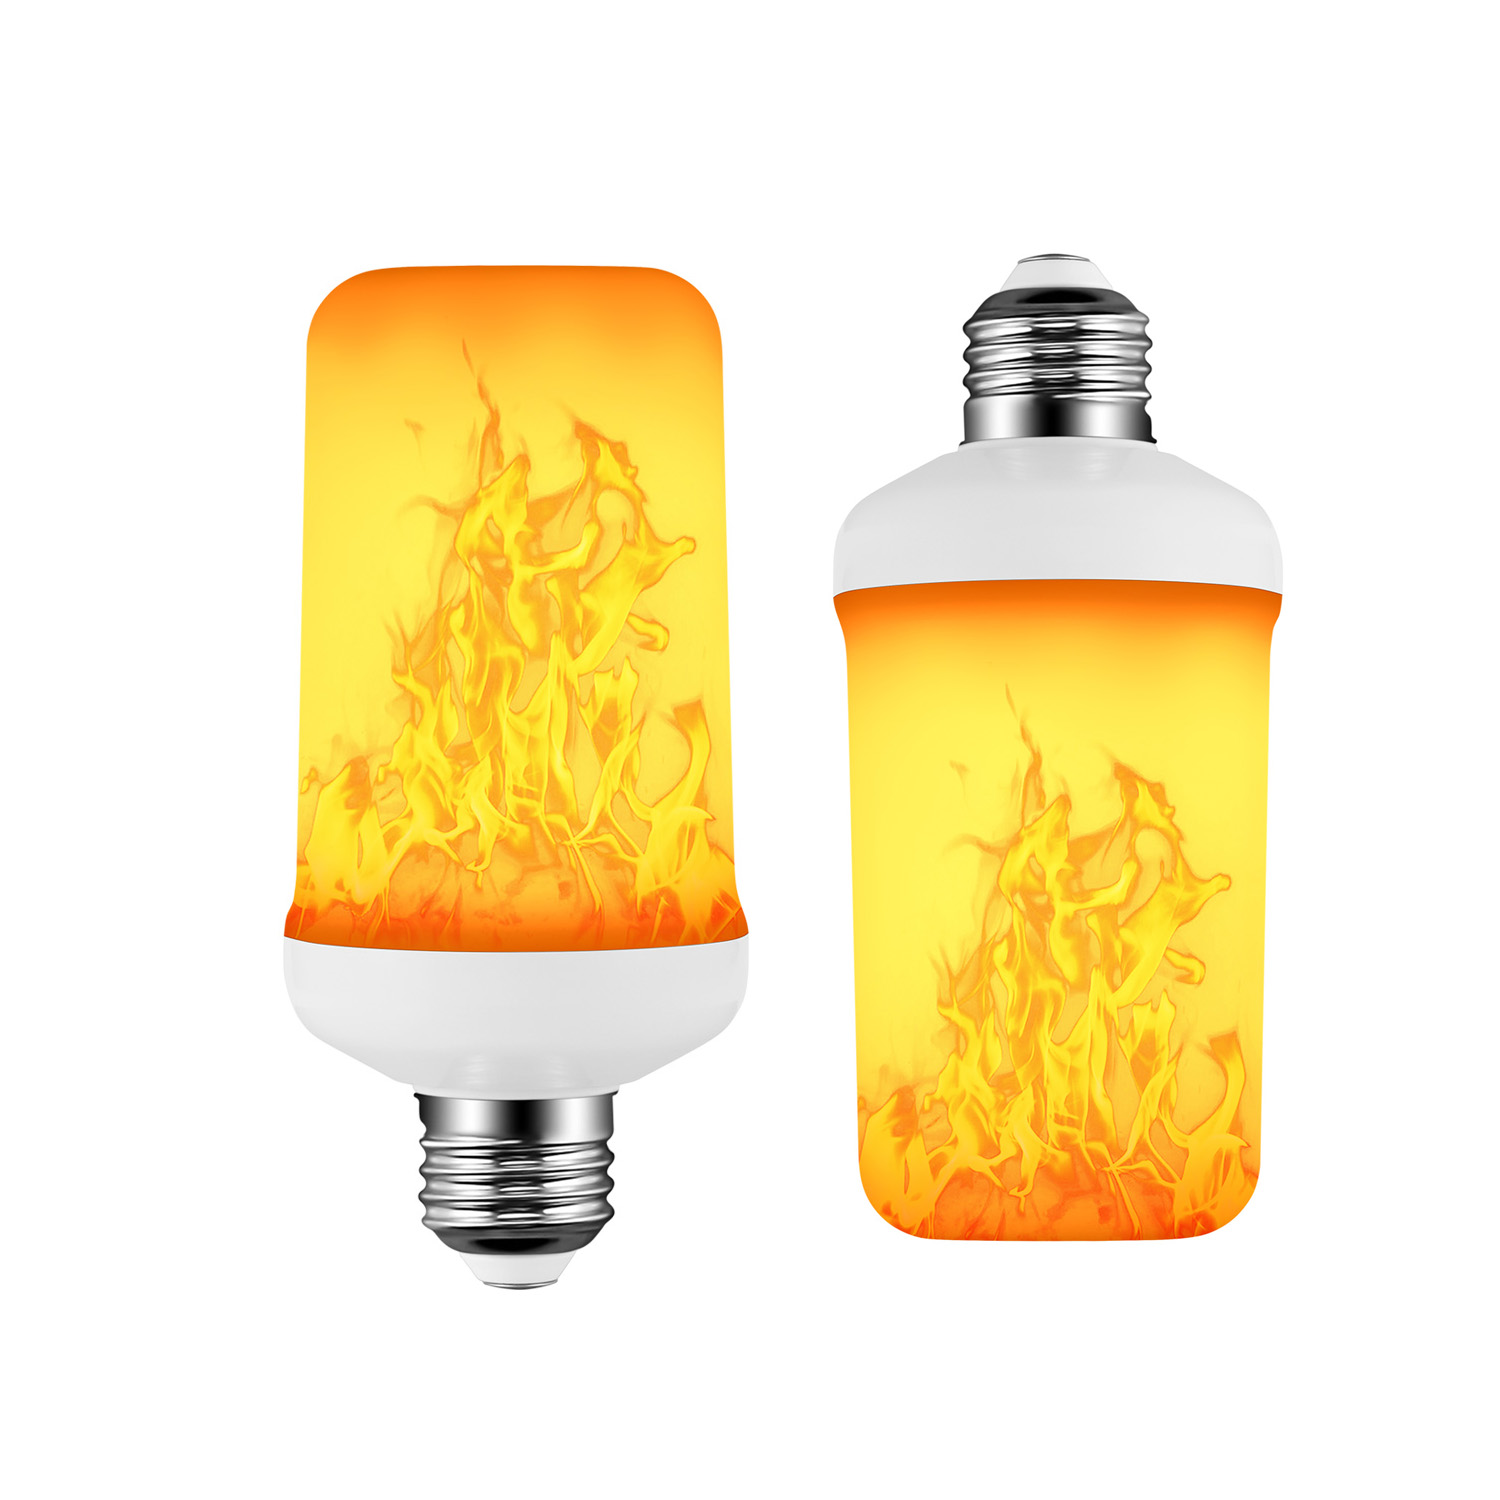 E27 85-265V LED Flame Effect Bulb Fire Light Gravity Sensor Corn Bulbs Emulation Decor Lamp Dynamic Light 4 Modes Creative Lampa